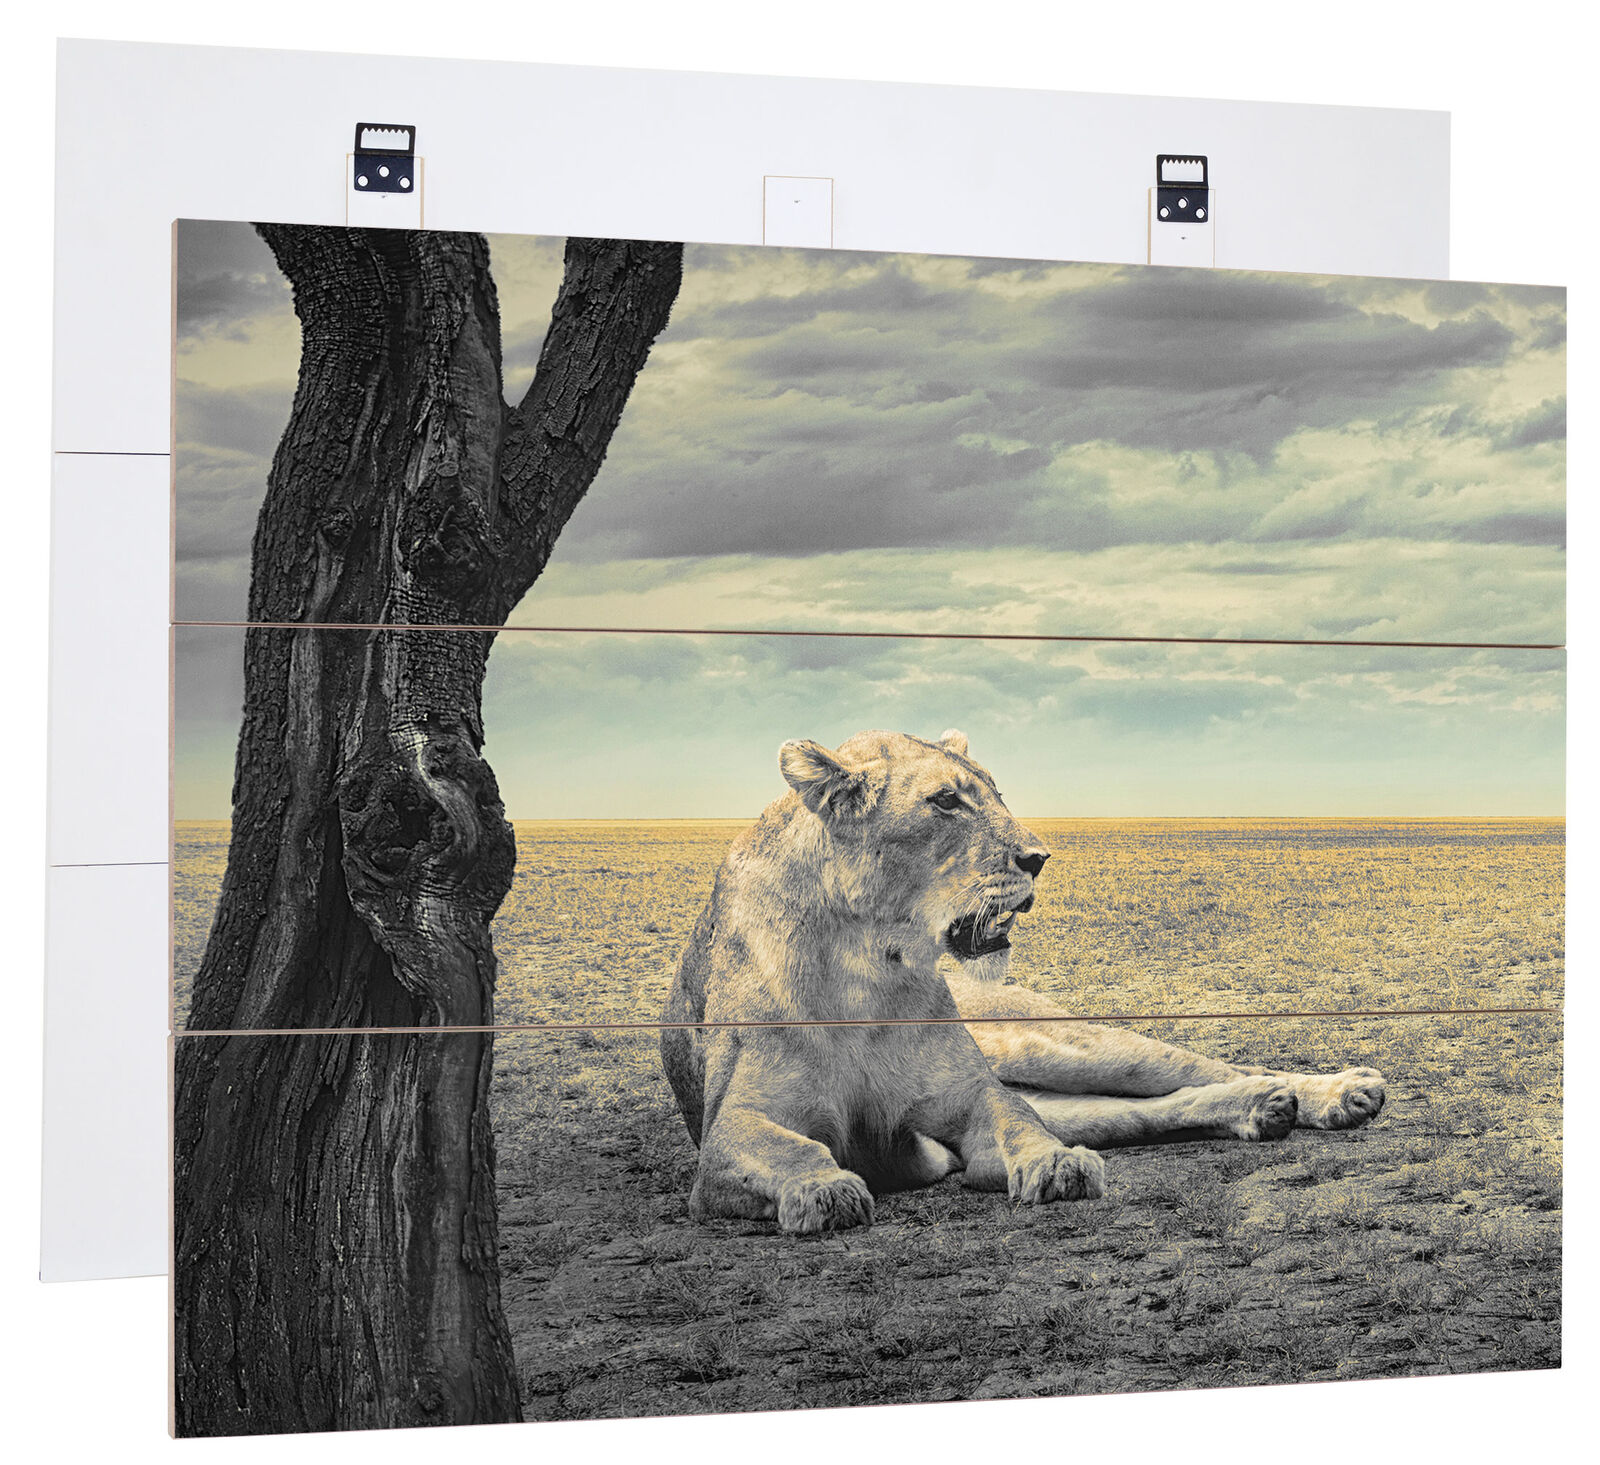 Lionne Calme Savannah B&w Détail - Authentique Mdf-Holzbild Bretterlook,